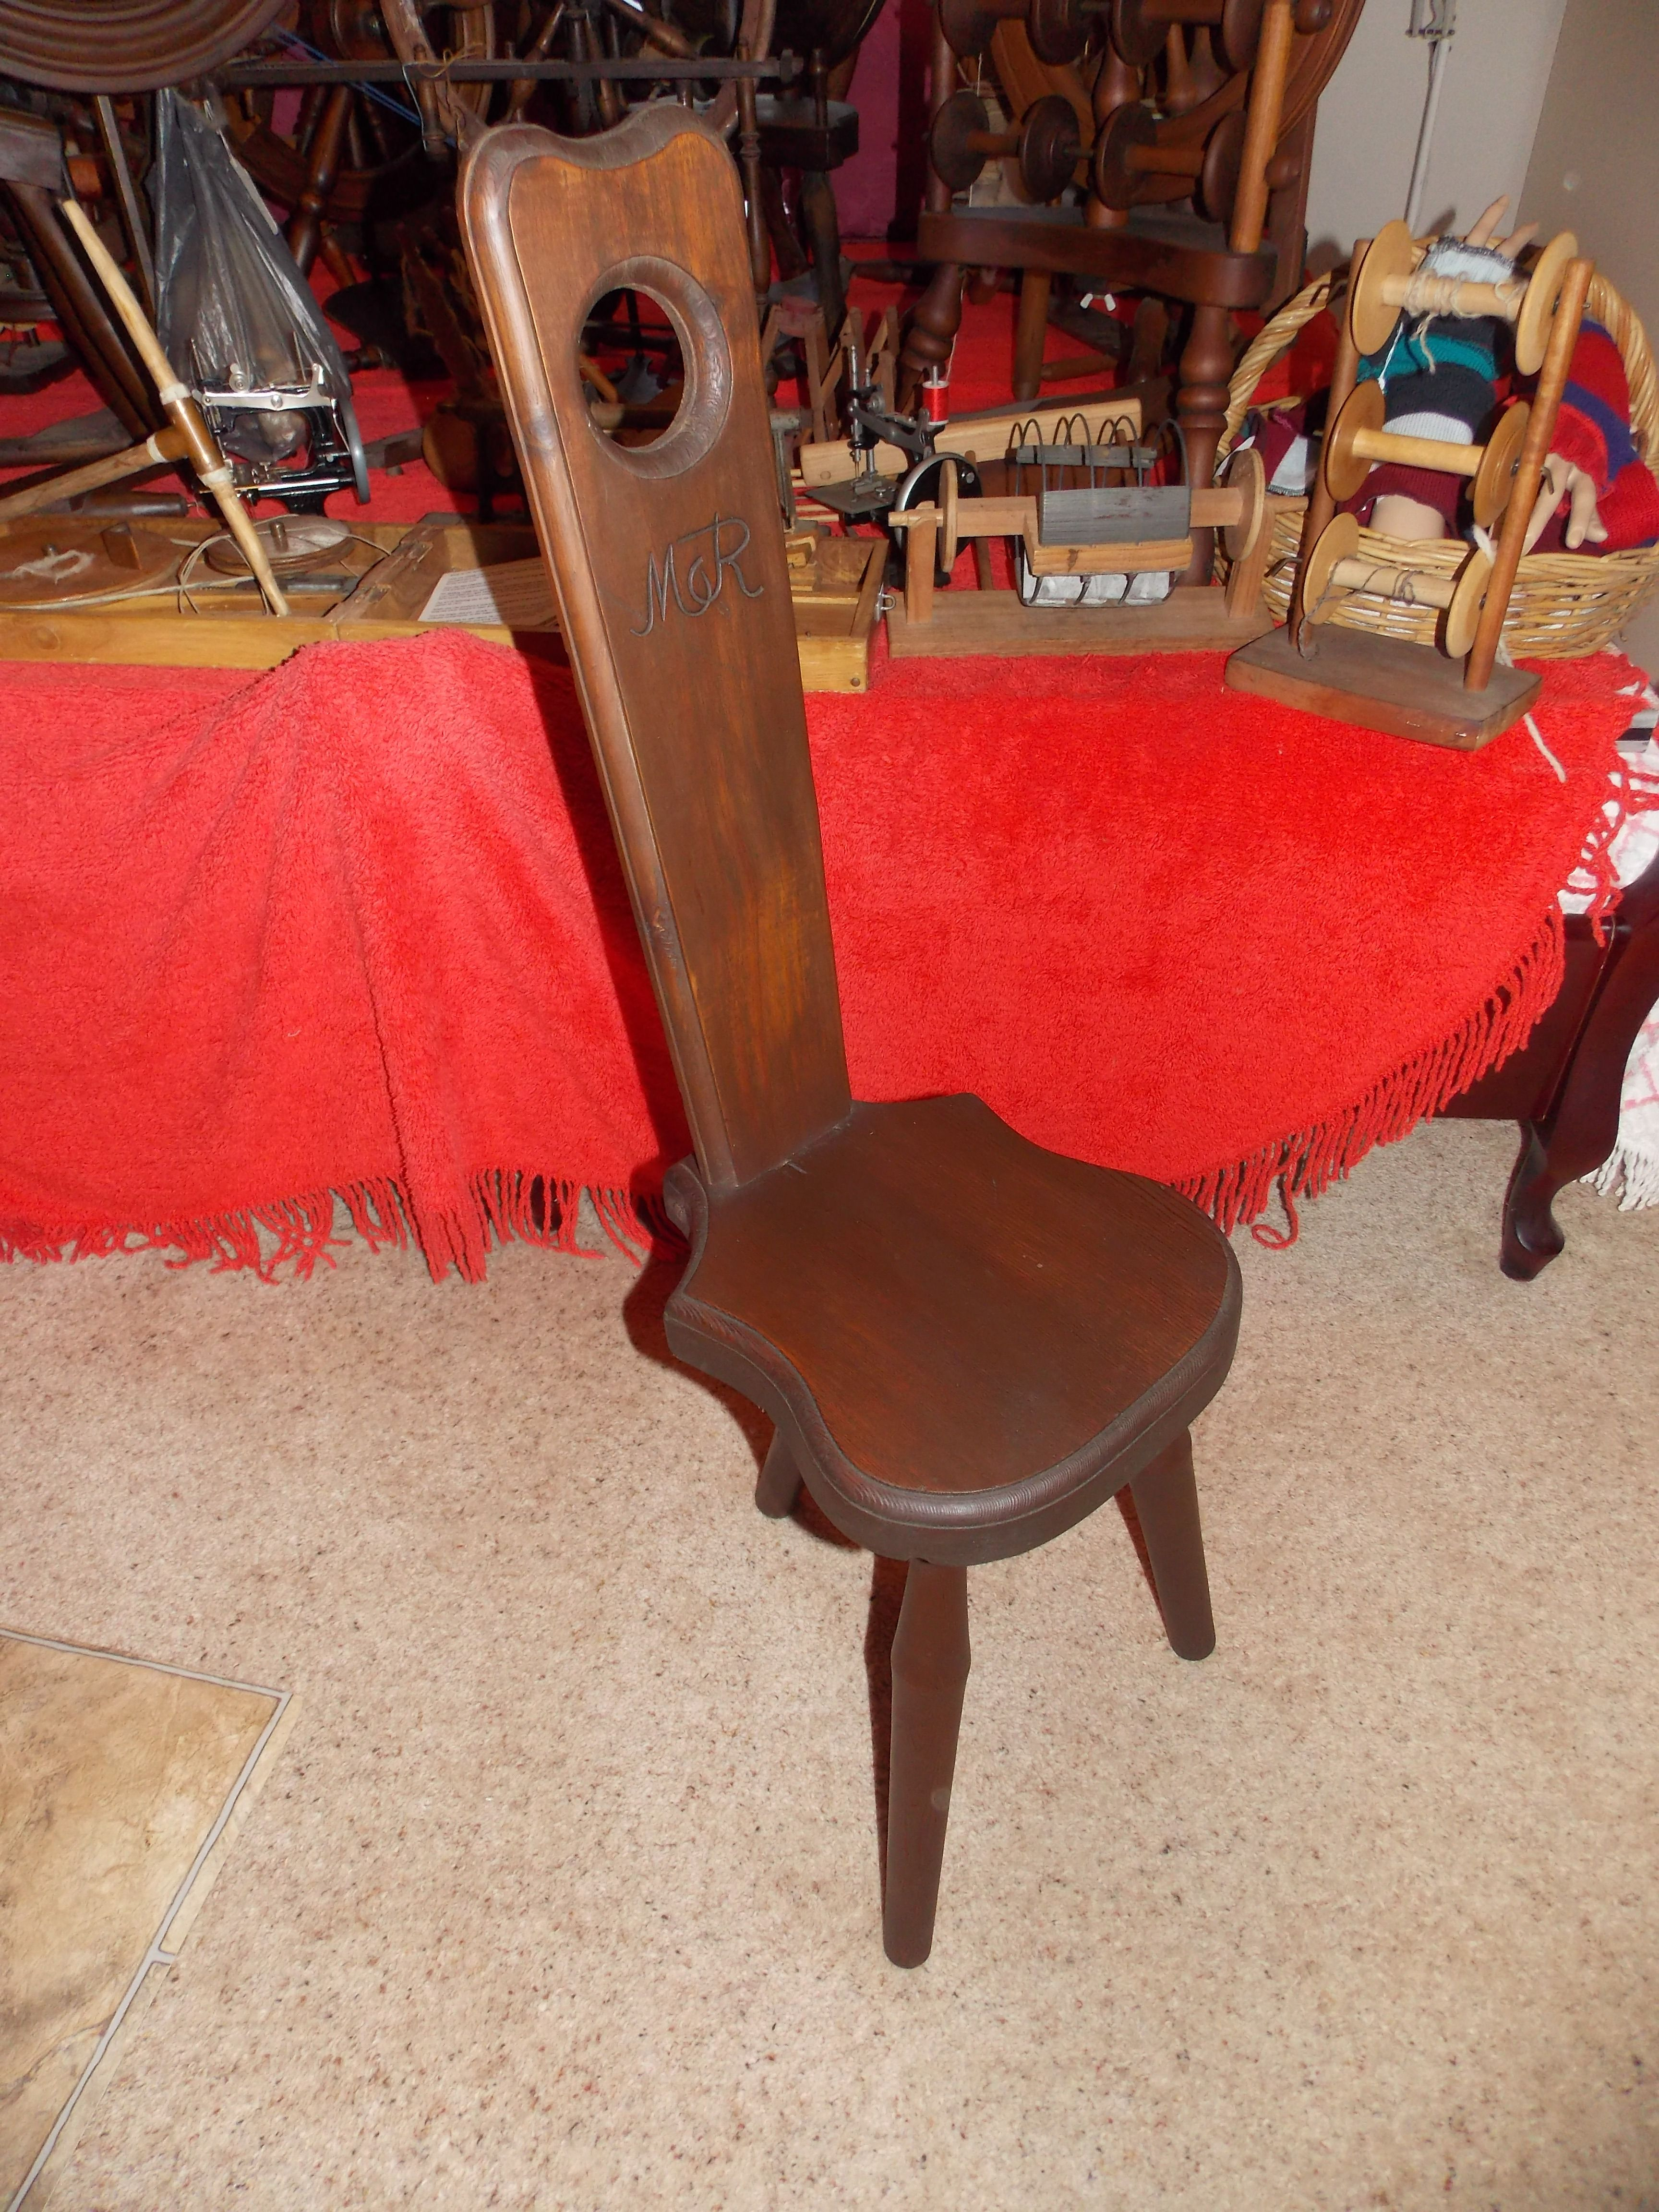 Strange This Spinning Seat Chair Stool We Picked Up With The Creativecarmelina Interior Chair Design Creativecarmelinacom